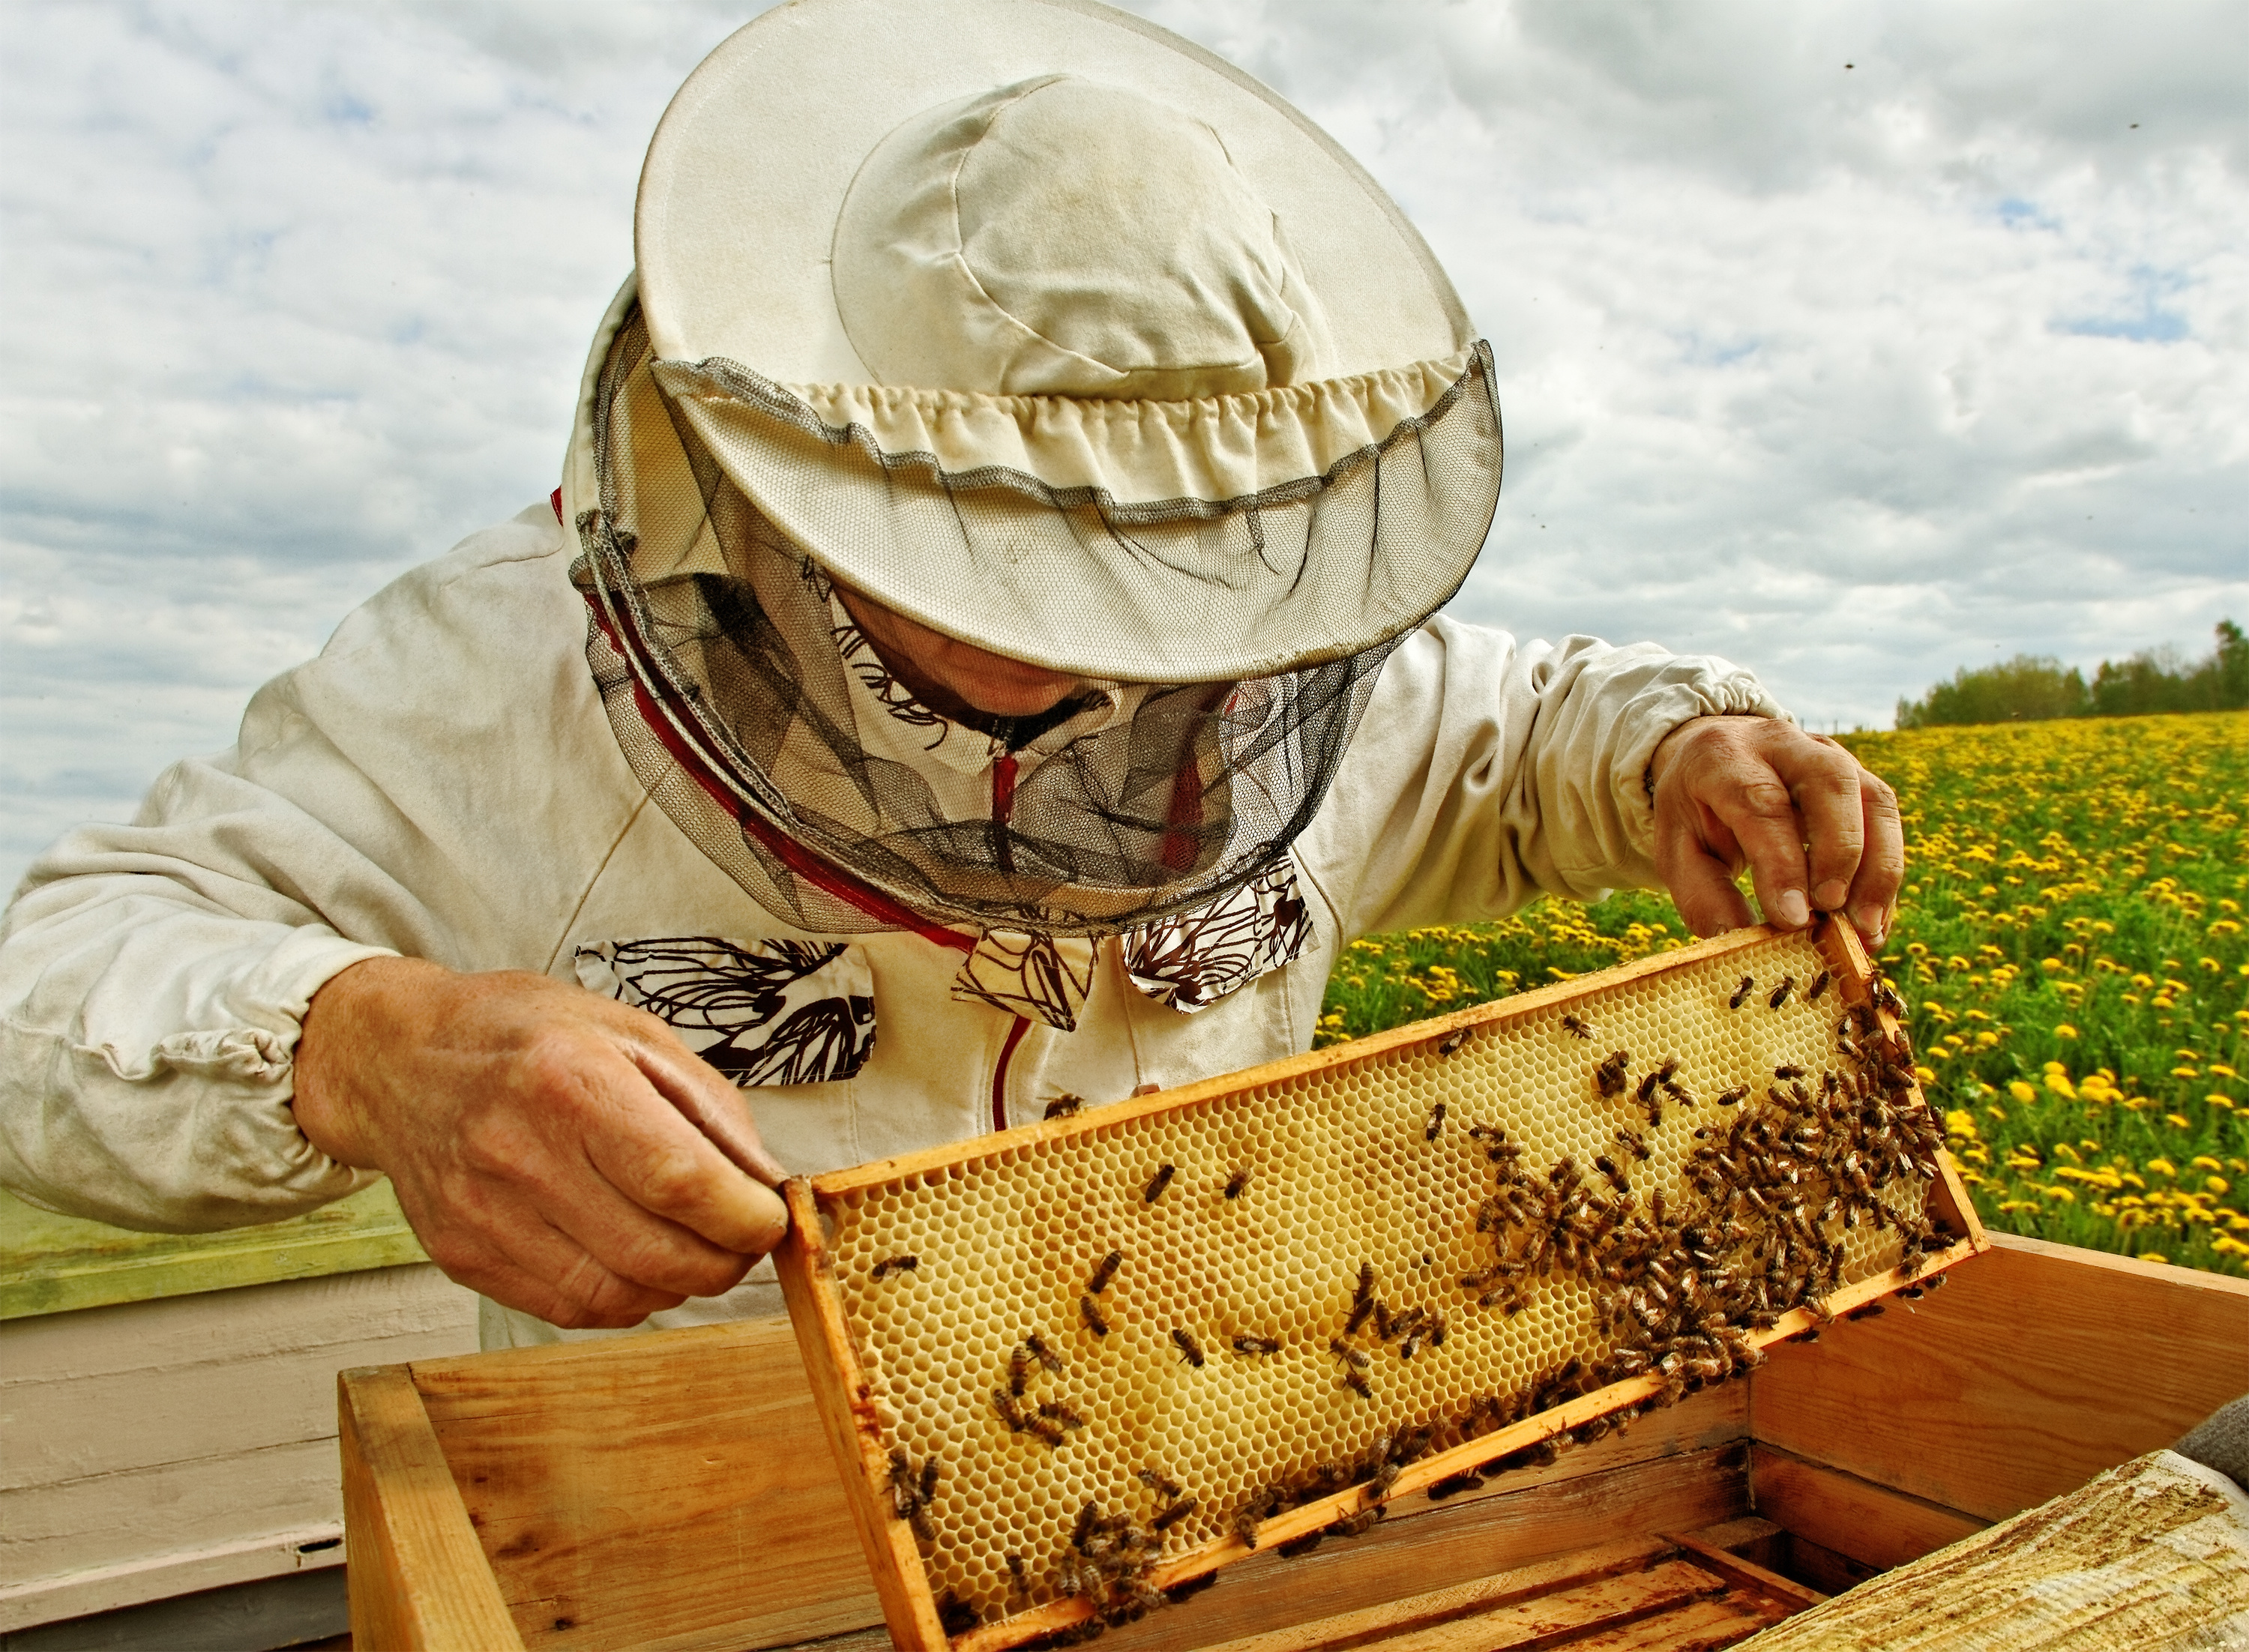 ApisProtect: Helping Beekeepers Prevent Losses and Increase Productivity in Their Hives